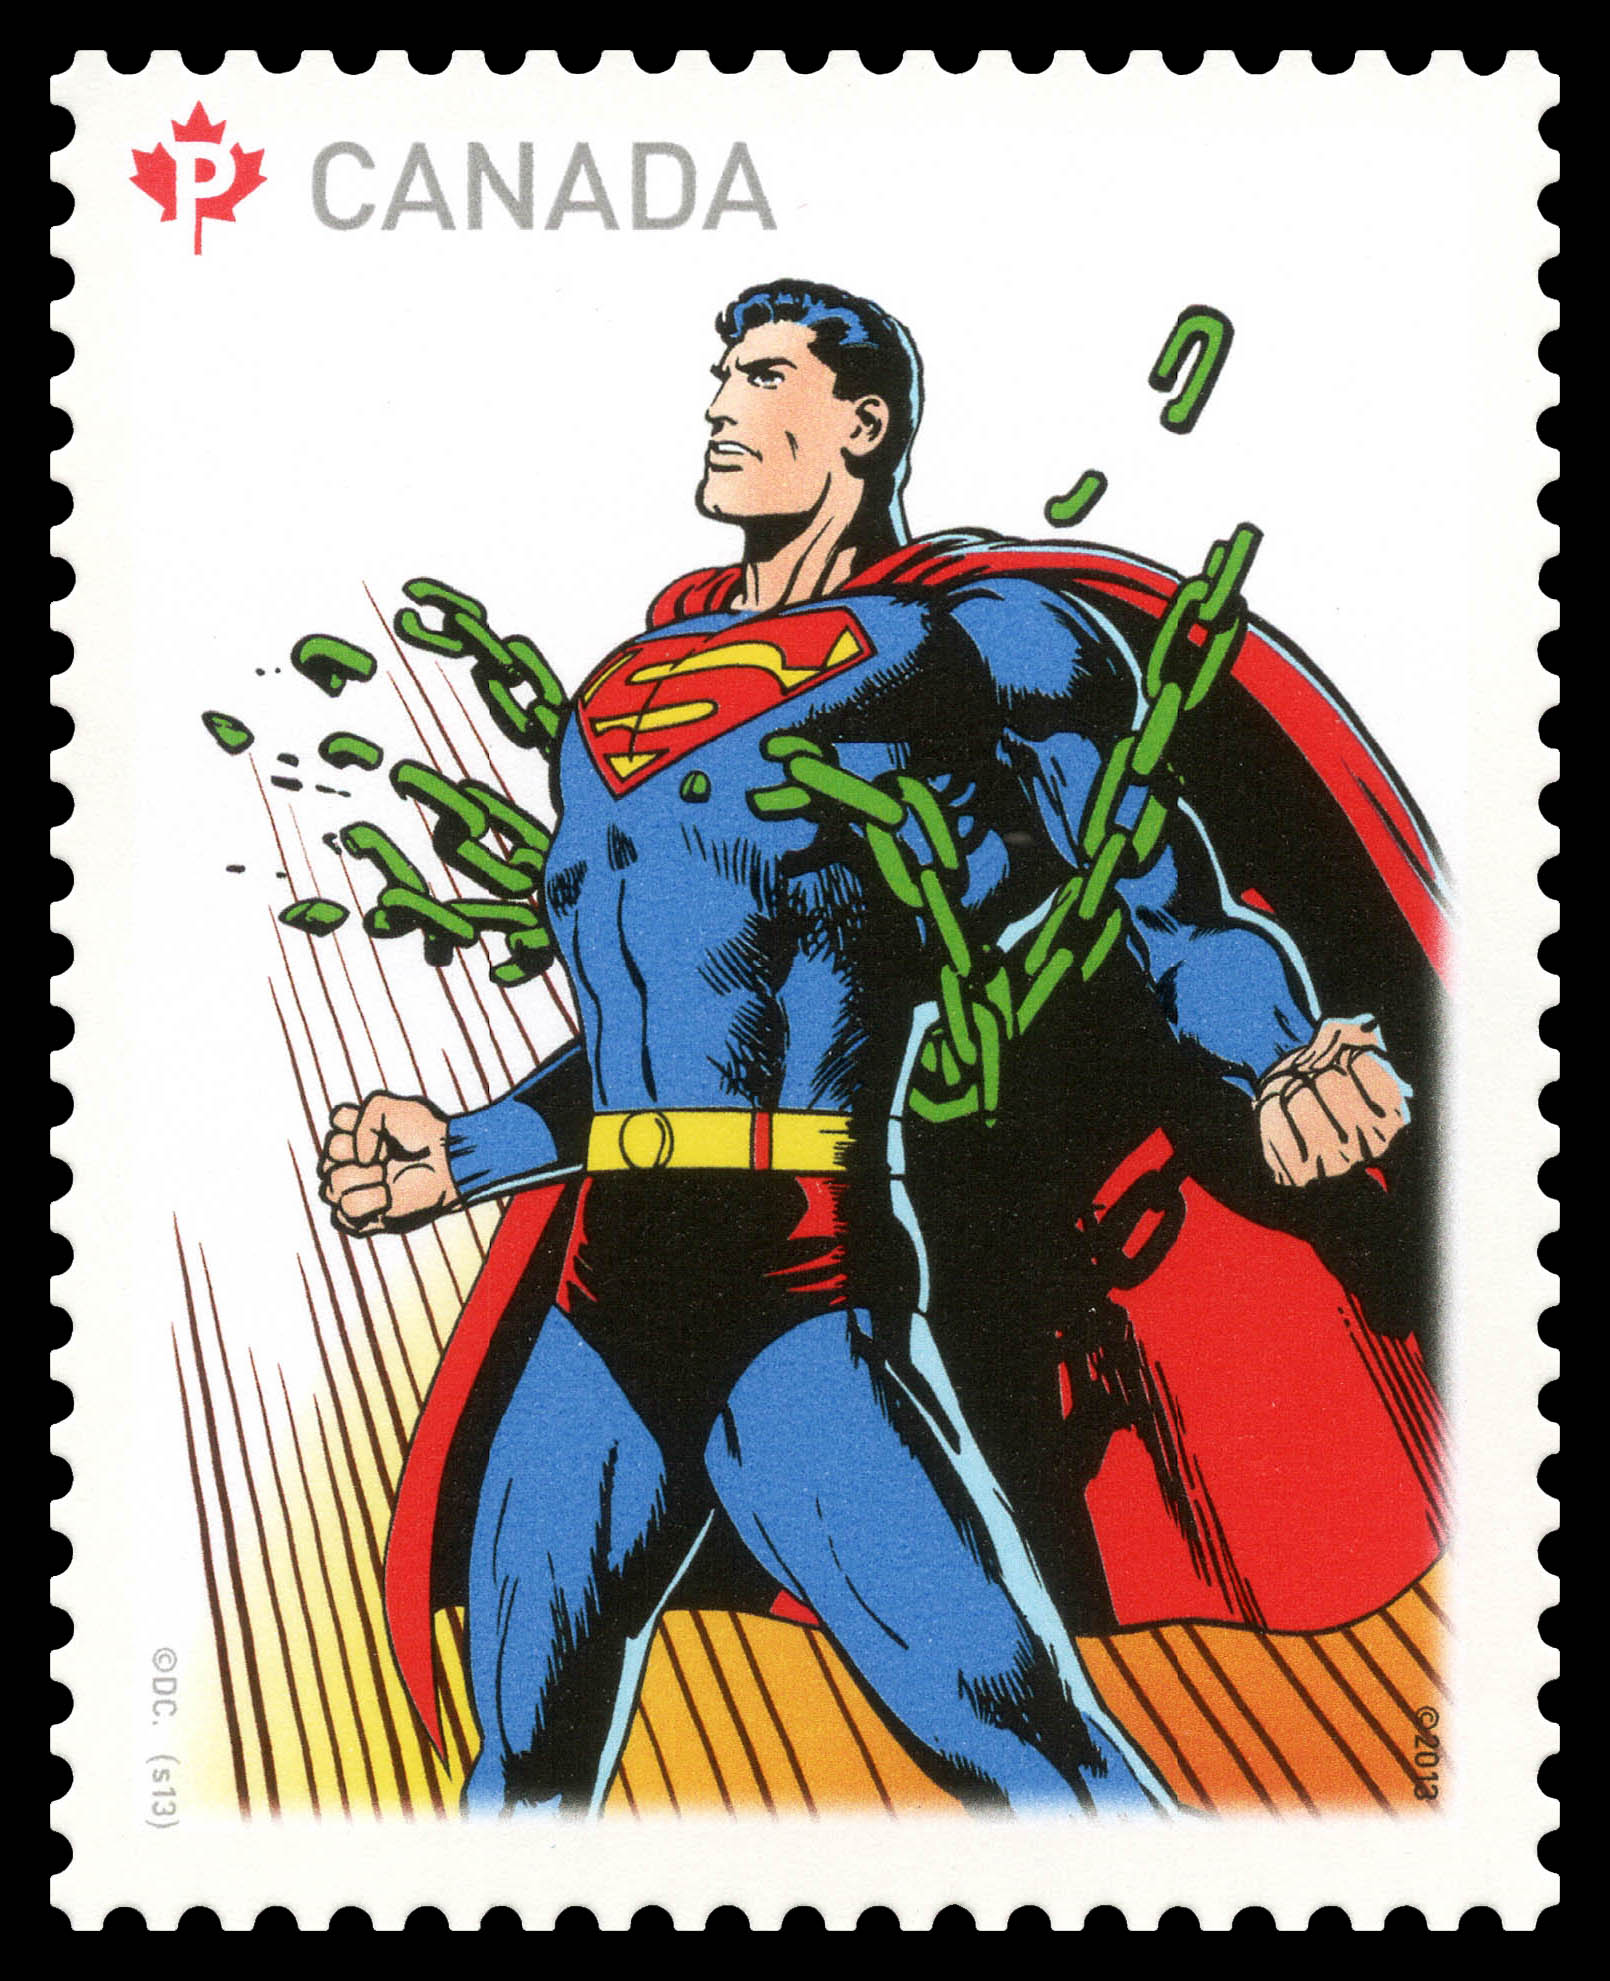 Superman Breaking Chains Canada Postage Stamp